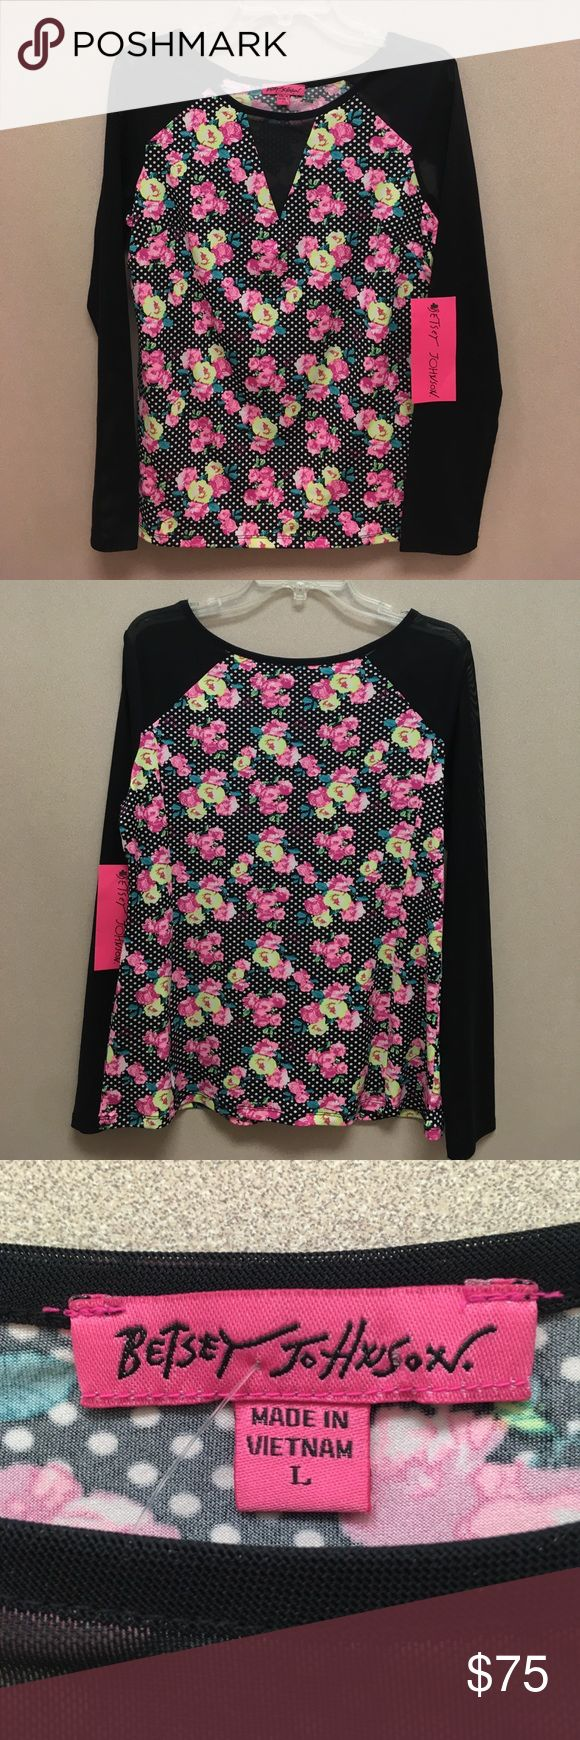 """Betsey Johnson Scoop Neck LS top L These are made of 4 ways stretch fabric (Floral Dot) that's light weight, silky, smooth. The Black areas are of durable Net Mesh. Center front Neck to Hem: approx. 23"""". Arm pit to arm pit: 19.5"""". Betsey Johnson Tops Blouses"""